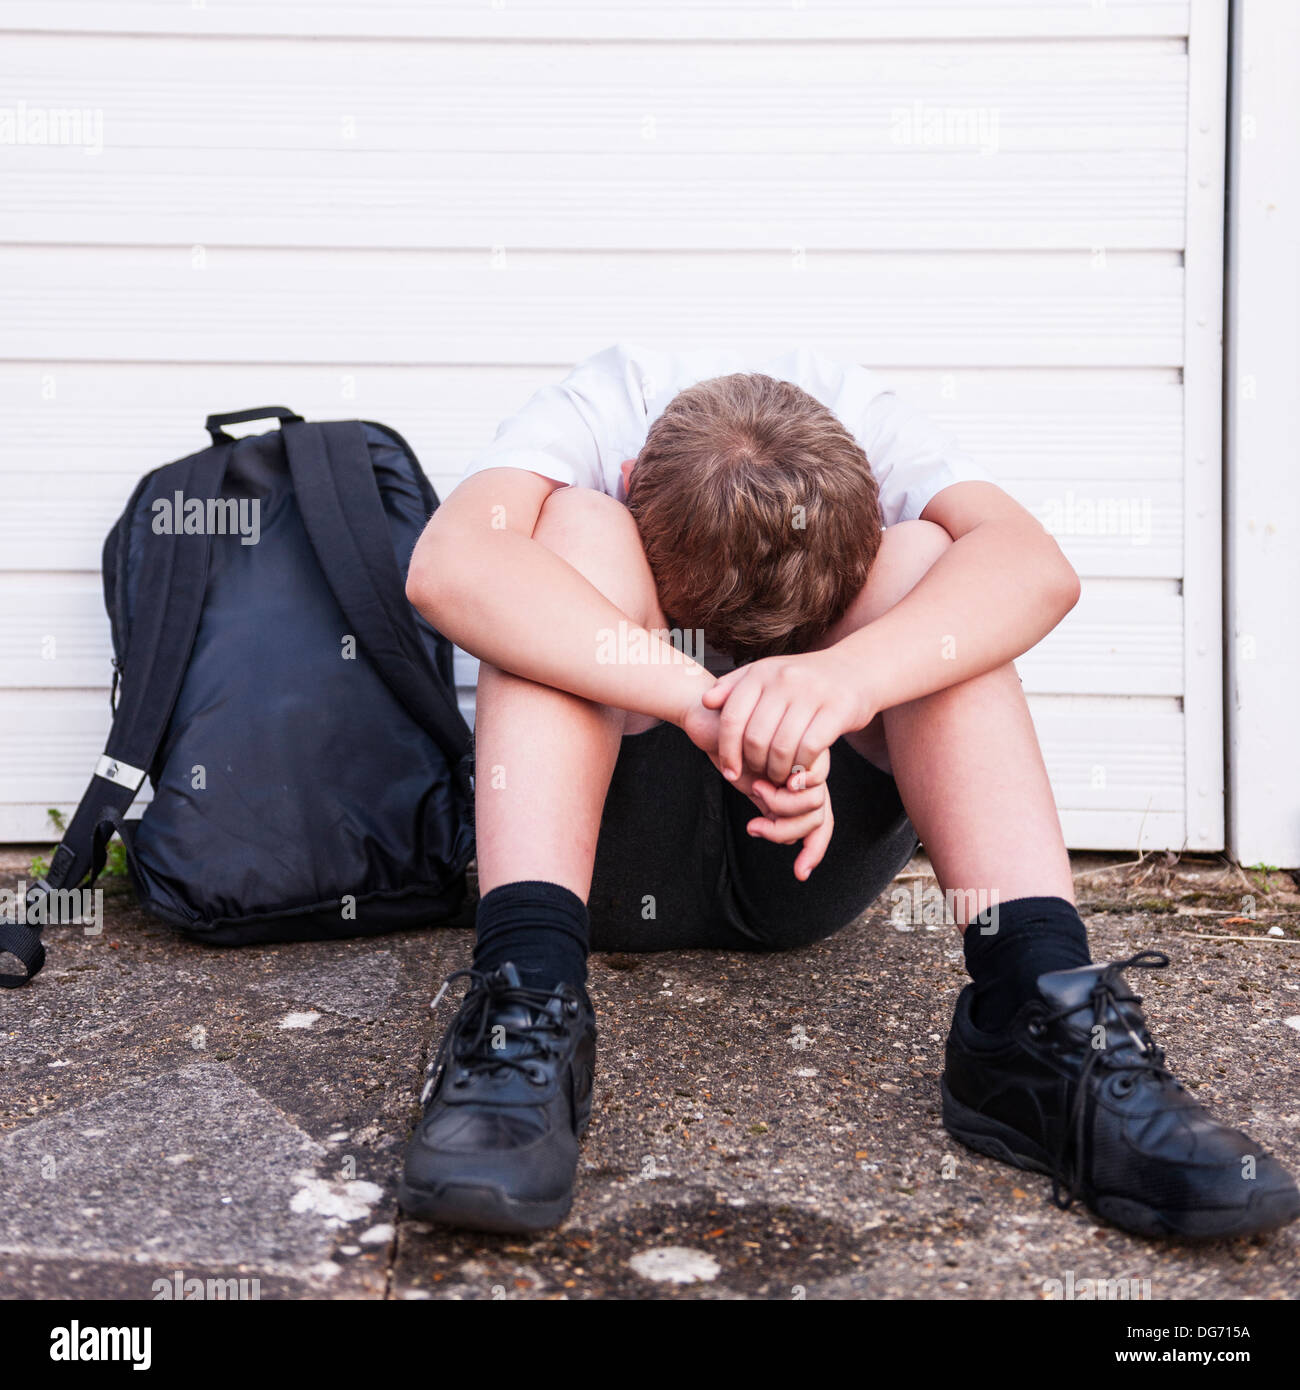 A boy of 10 looking sad and depressed in his school uniform showing the effects of bullying in the UkStock Photo